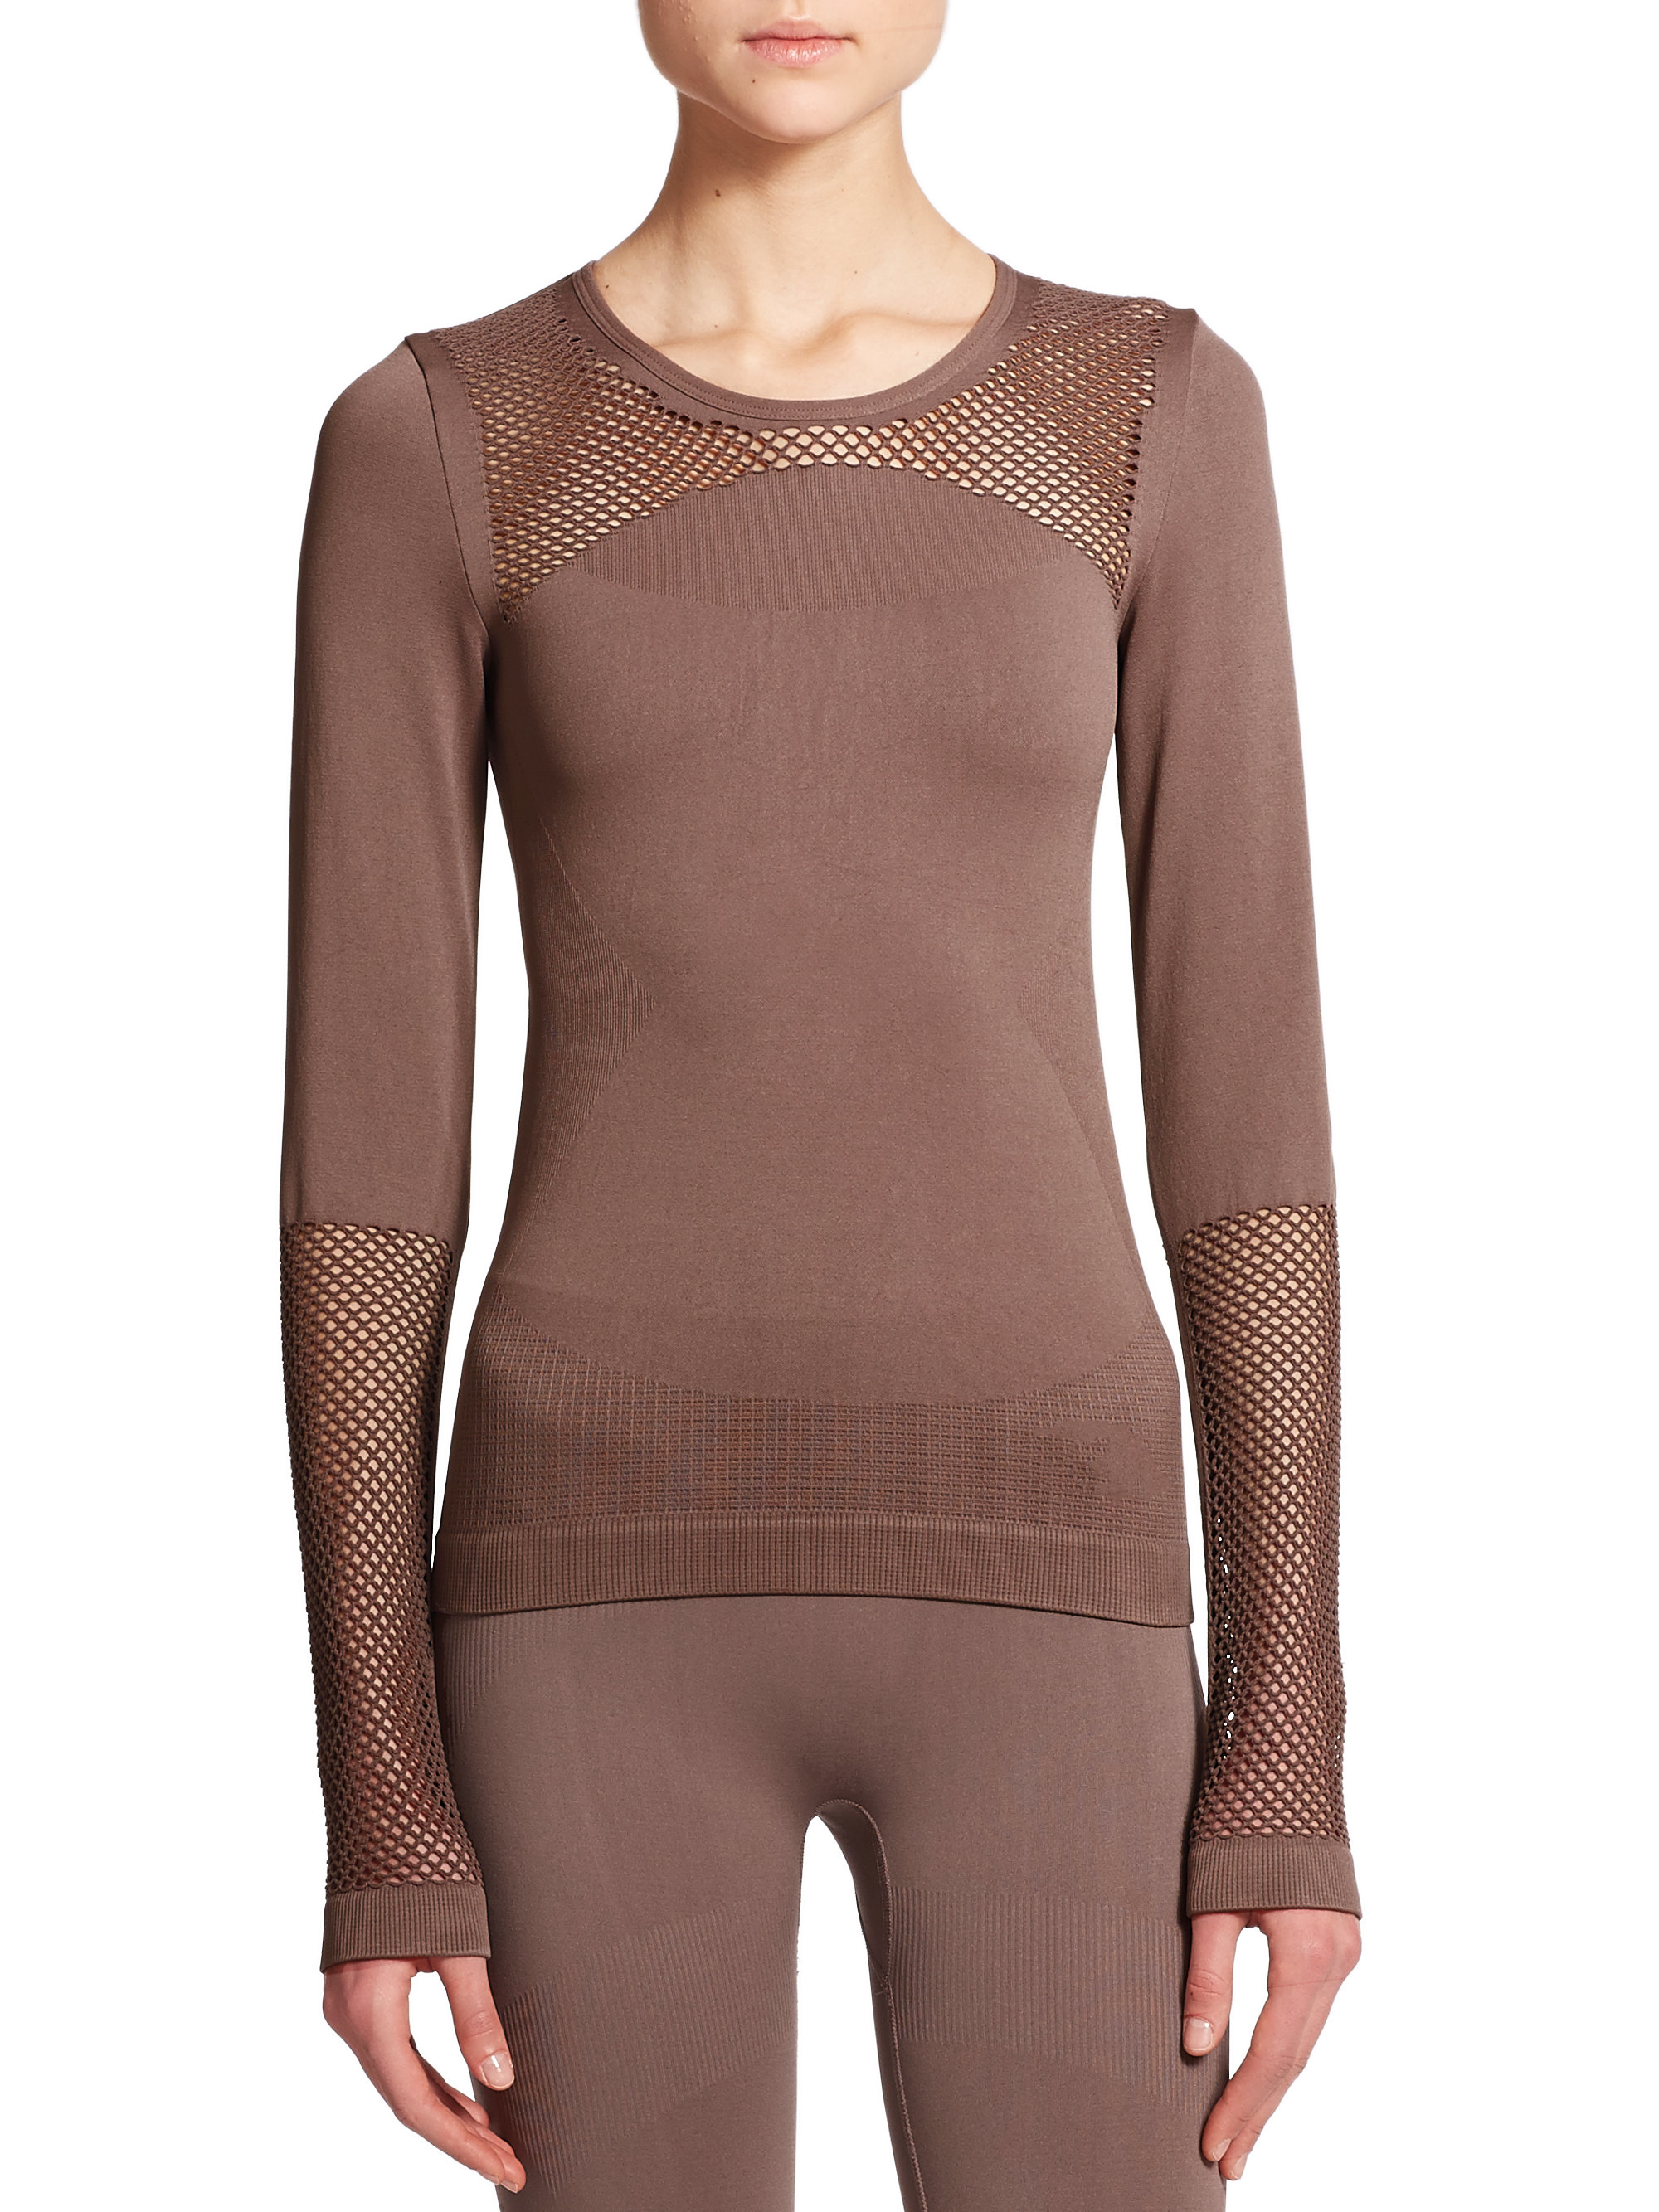 korean mesh long sleeve long sleeved brown top reviews: long sleeve beige top top long sleeve beige long sleeve top beige beige top long sleeve beige long sleeve top half blouse with sleeve basic black long sleeve long sleeved red top red long sleeved top. .